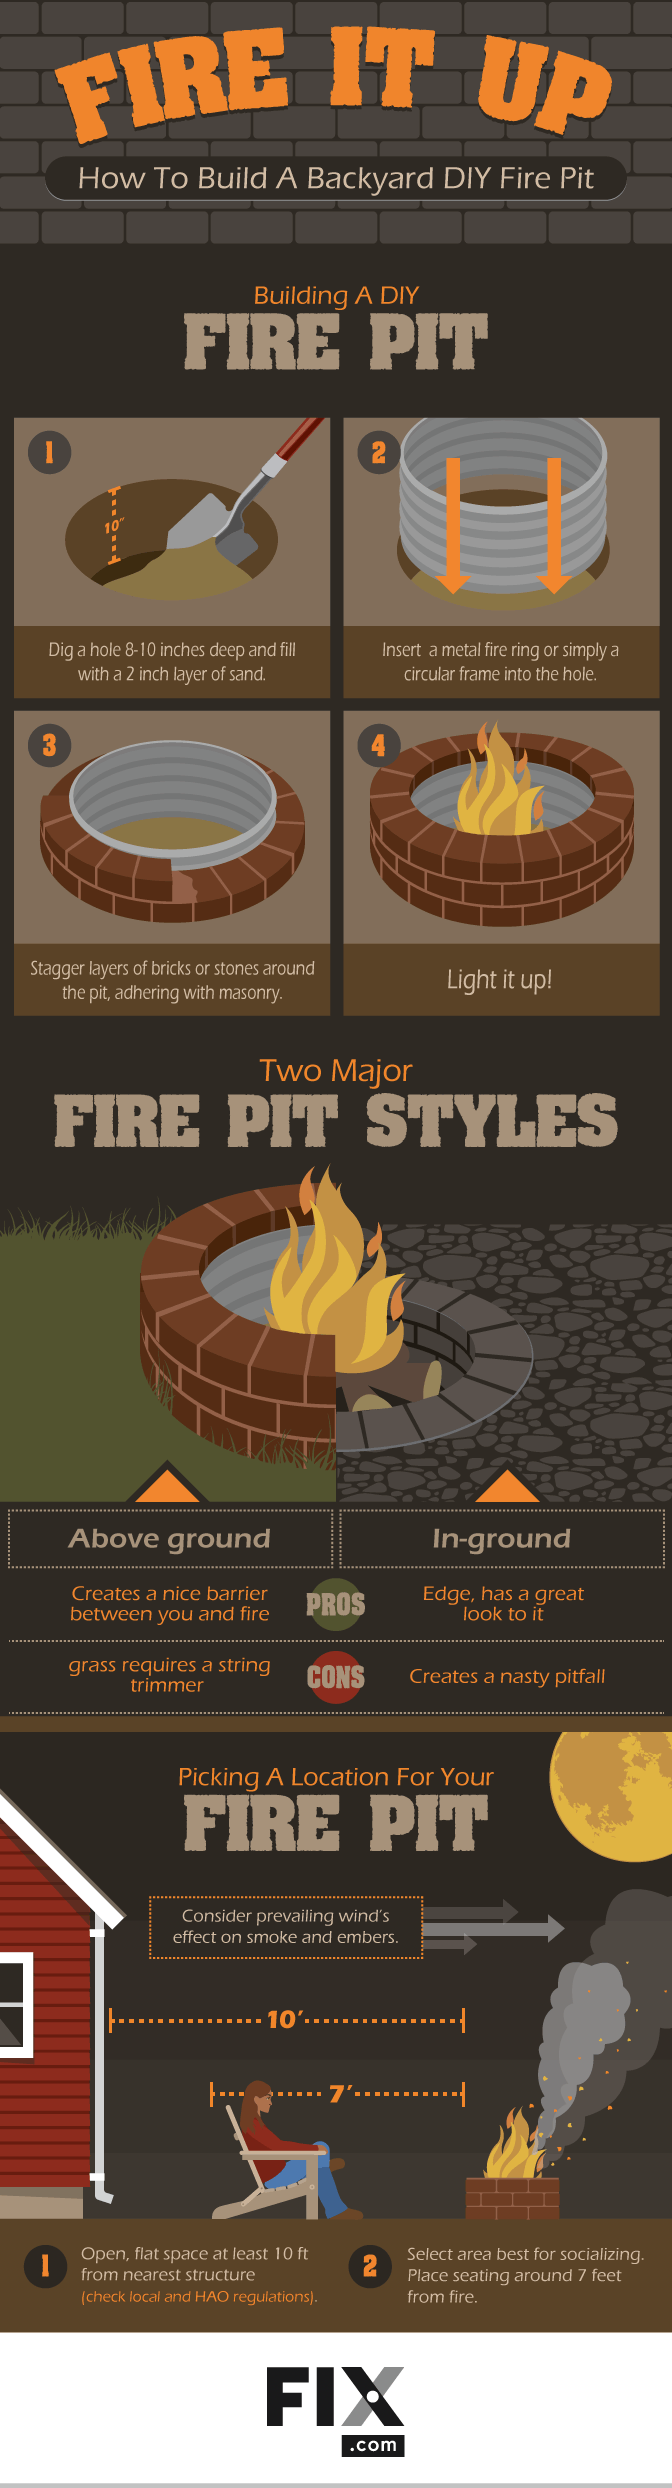 Fire It Up! How to Build a Backyard DIY Fire Pit #Infographic